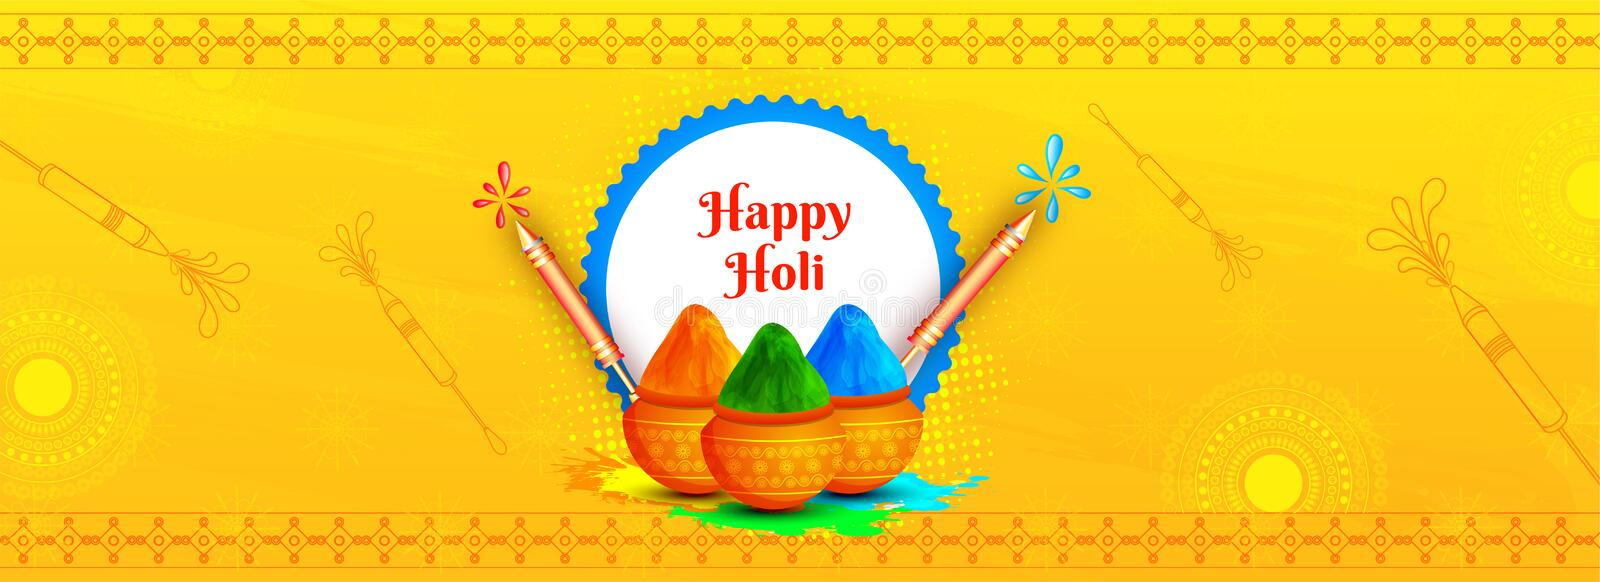 Happy Holi header or banner design with illustration of color pots and water guns on yellow background. vector illustration